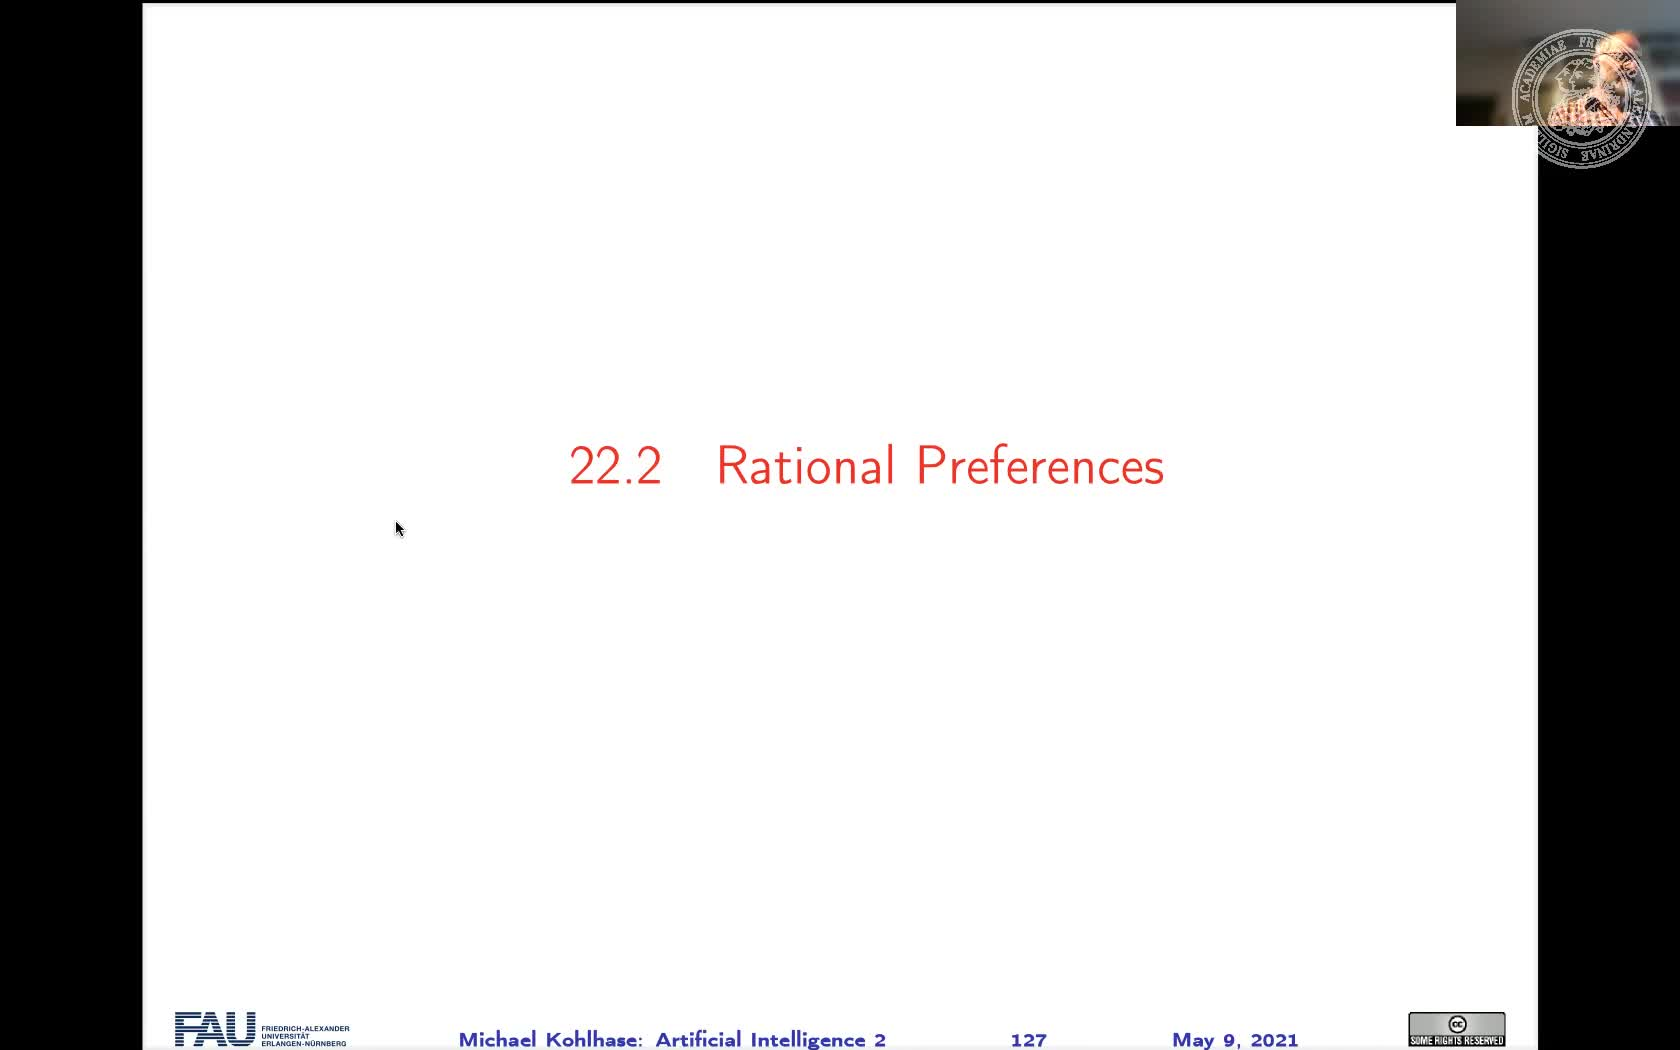 22.2 Rational Preferences preview image